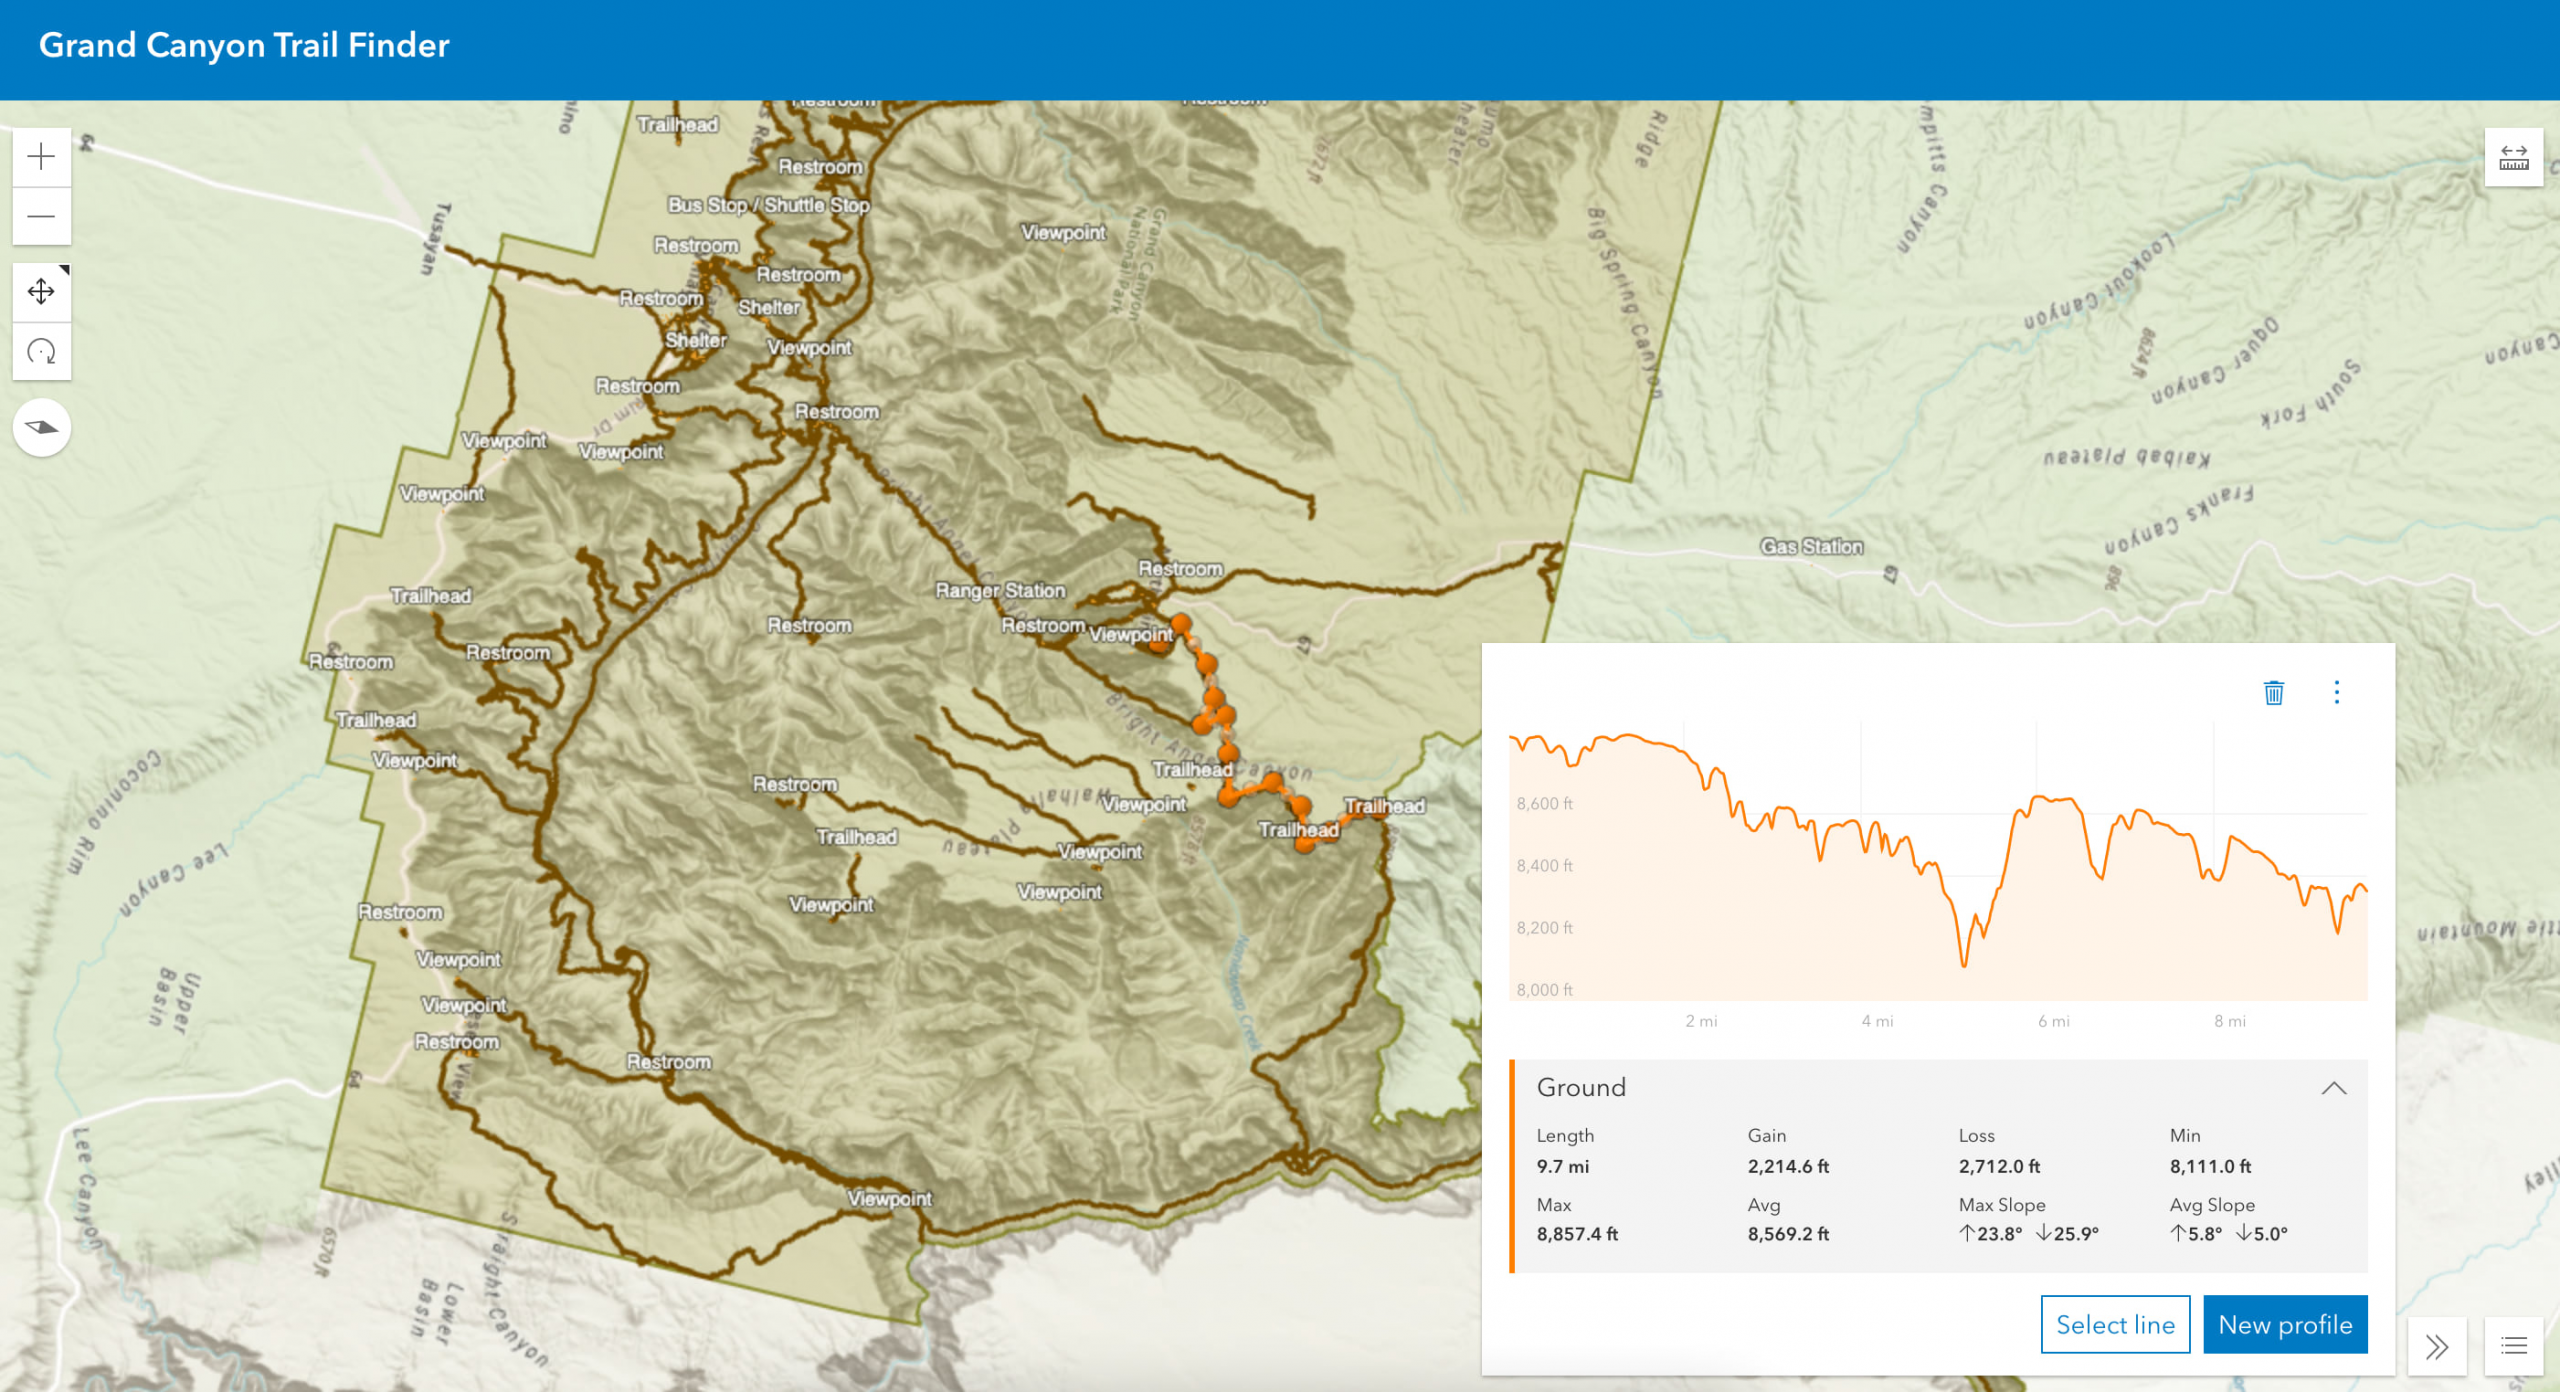 A 3D Viewer App of the Grand Canyon with an elevation profile for a trail